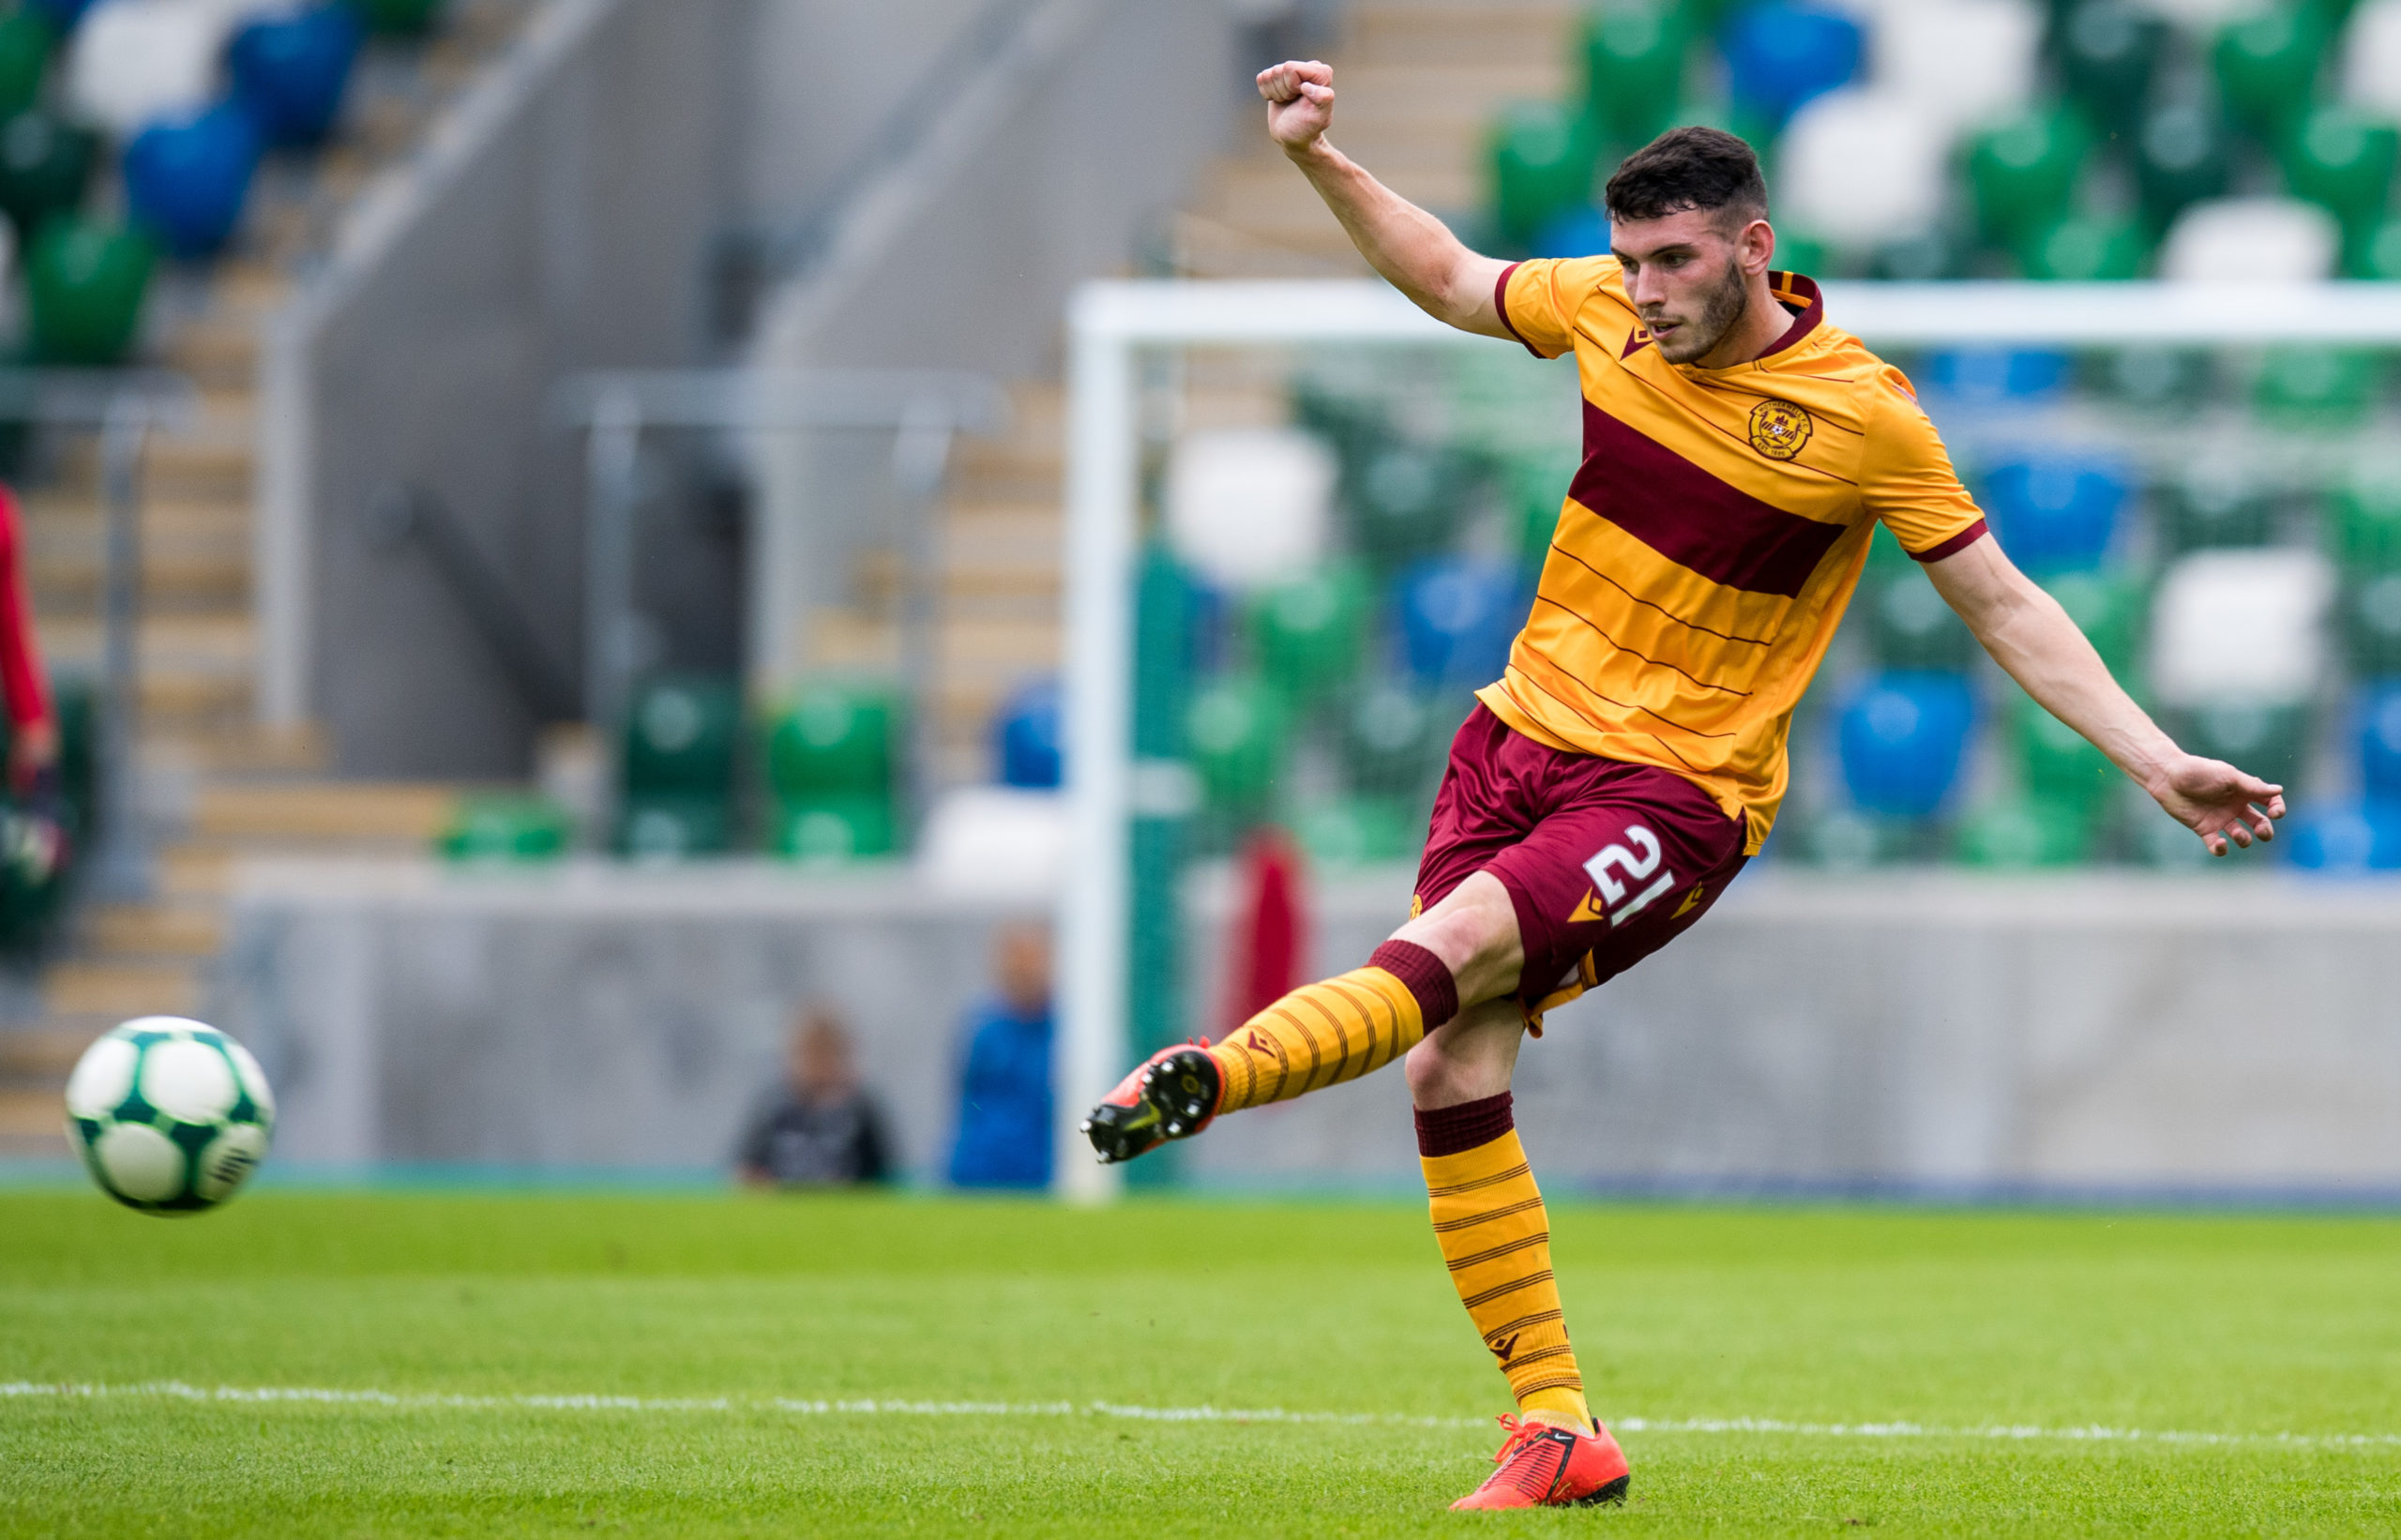 Adam Livingstone has joined Cove after leaving Motherwell